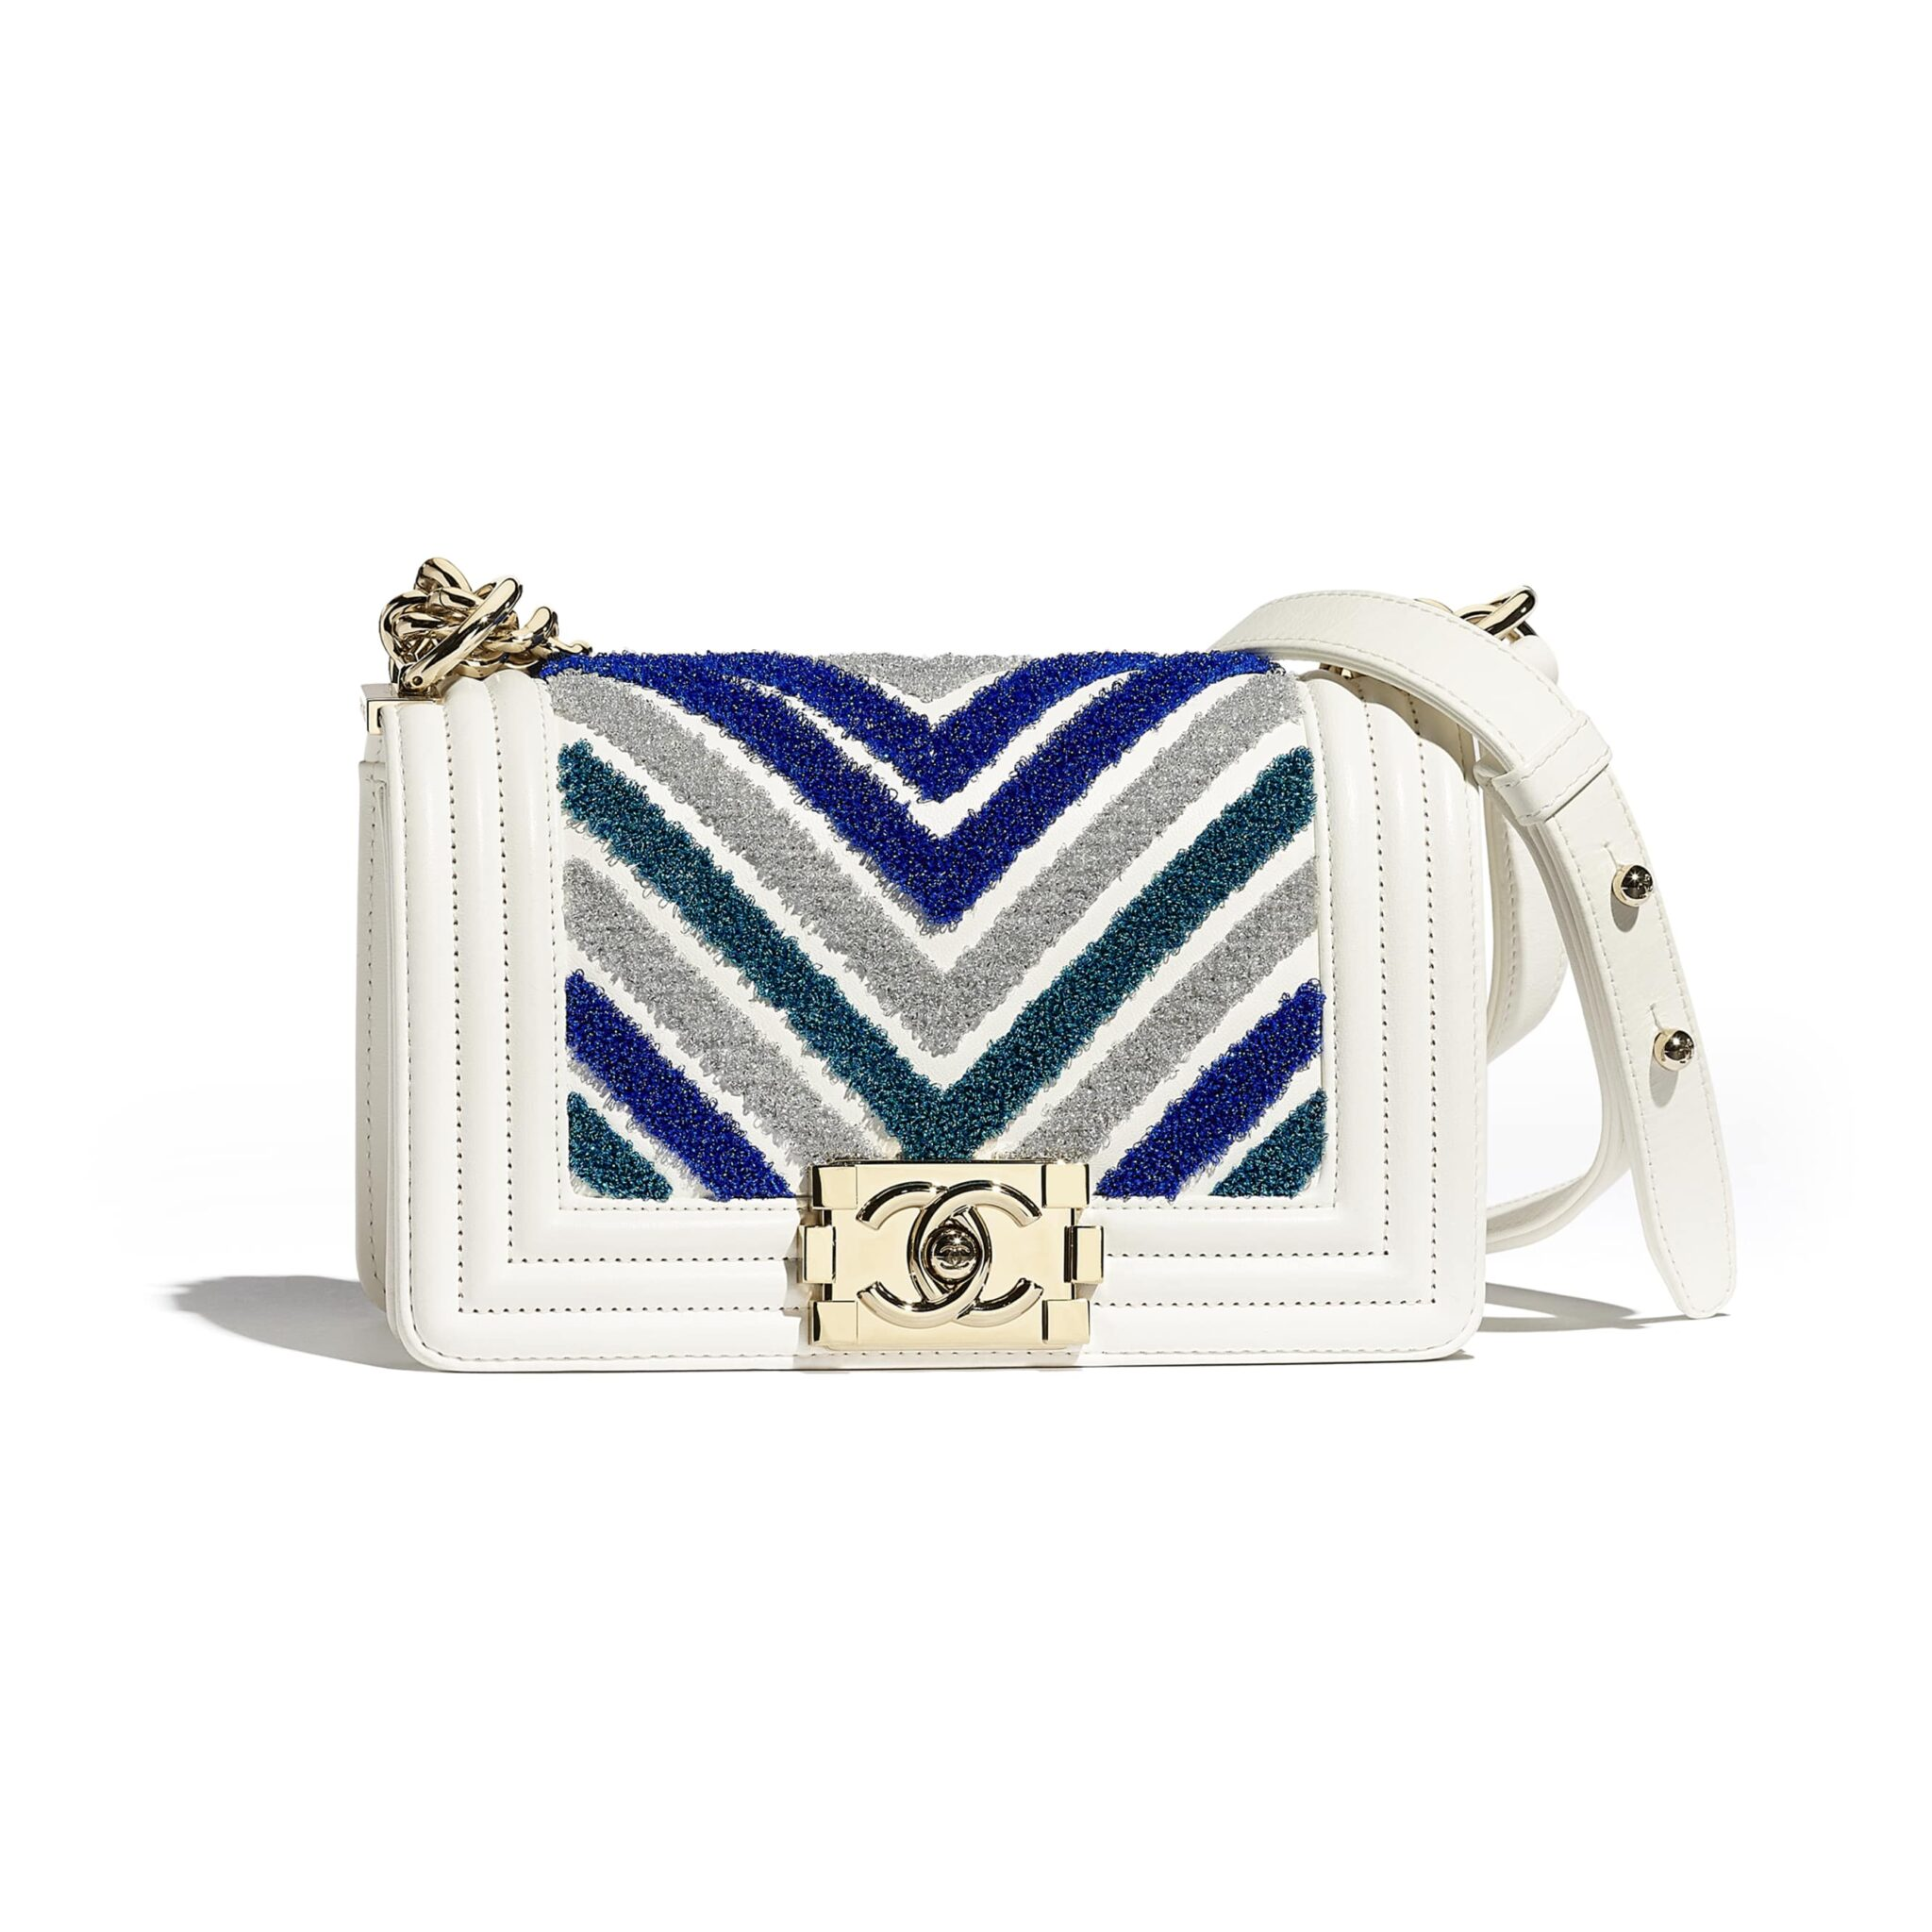 8e1346b665a012 Chanel Blue/White Embroidered Calfskin/Lurex Boy Chanel Small Flap Bag